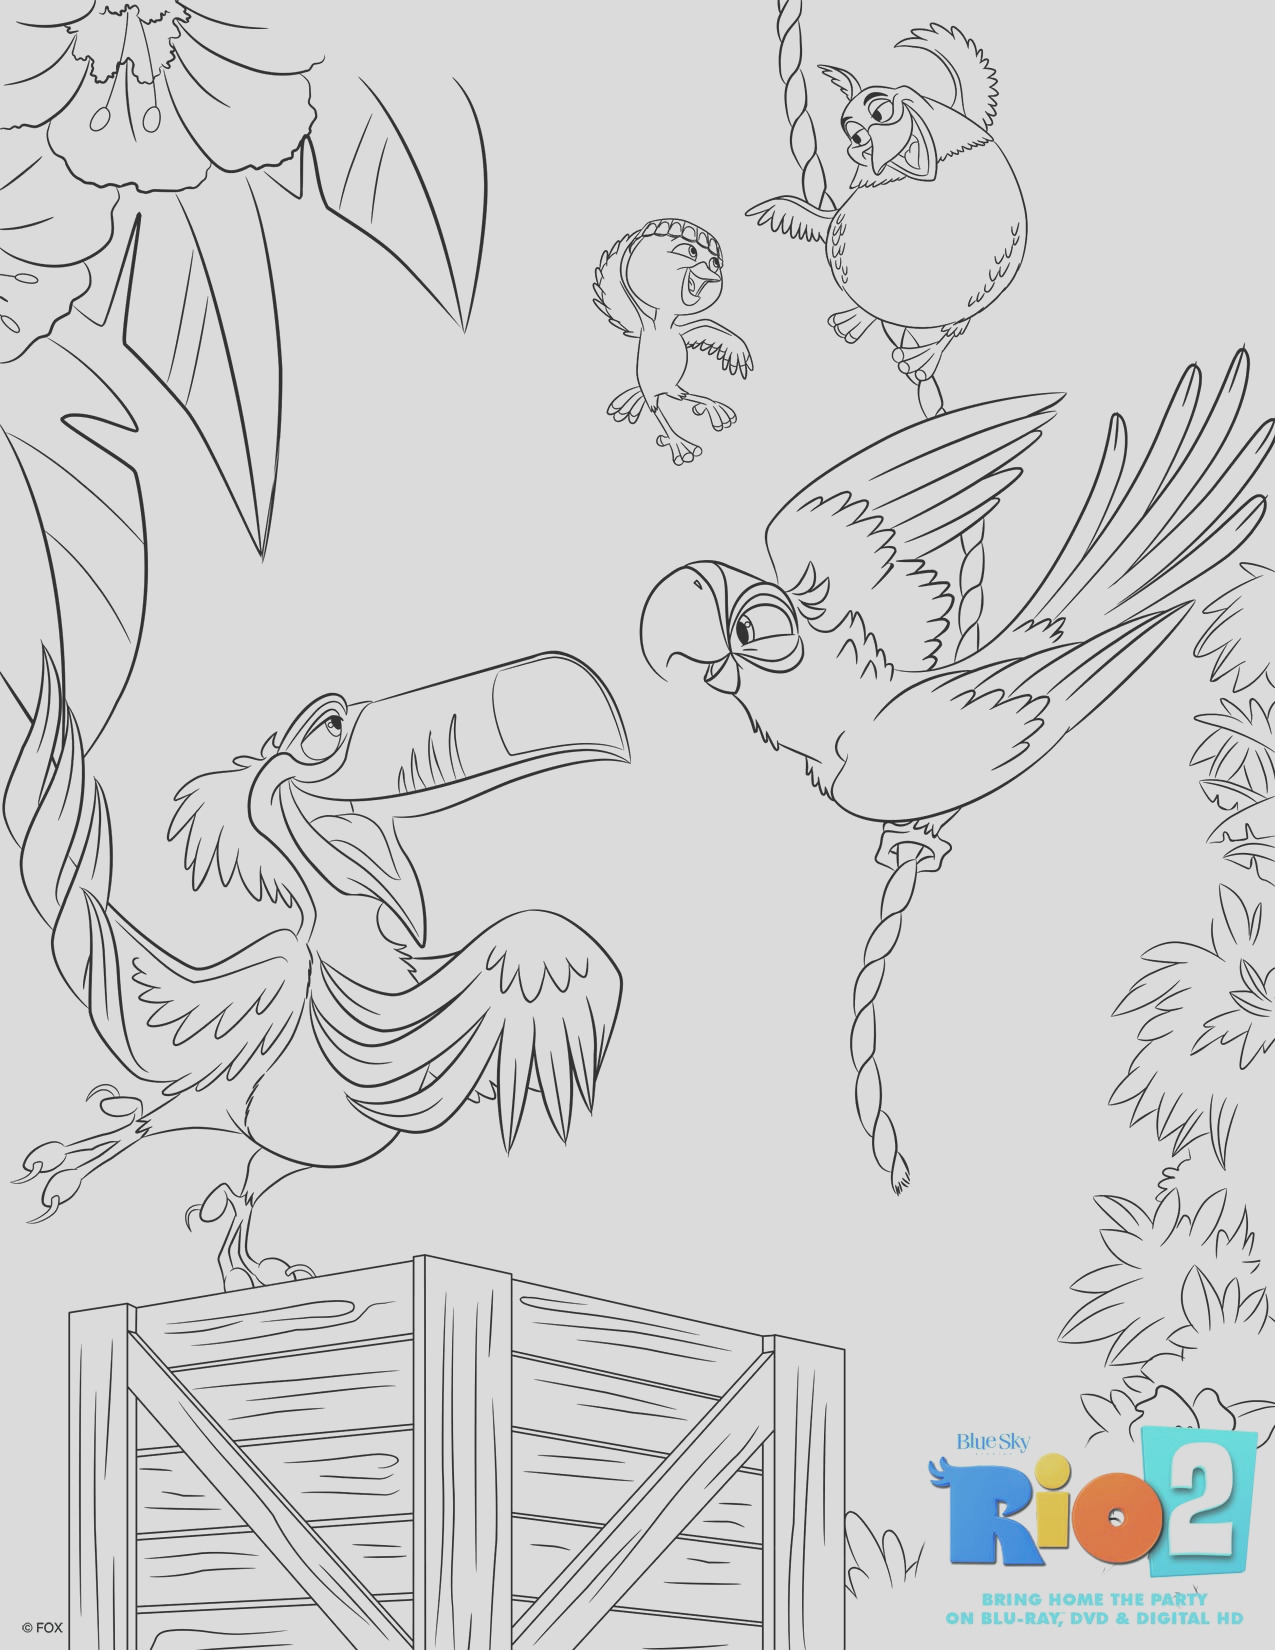 rio2insiders free printable rio 2 coloring sheets fheinsiders